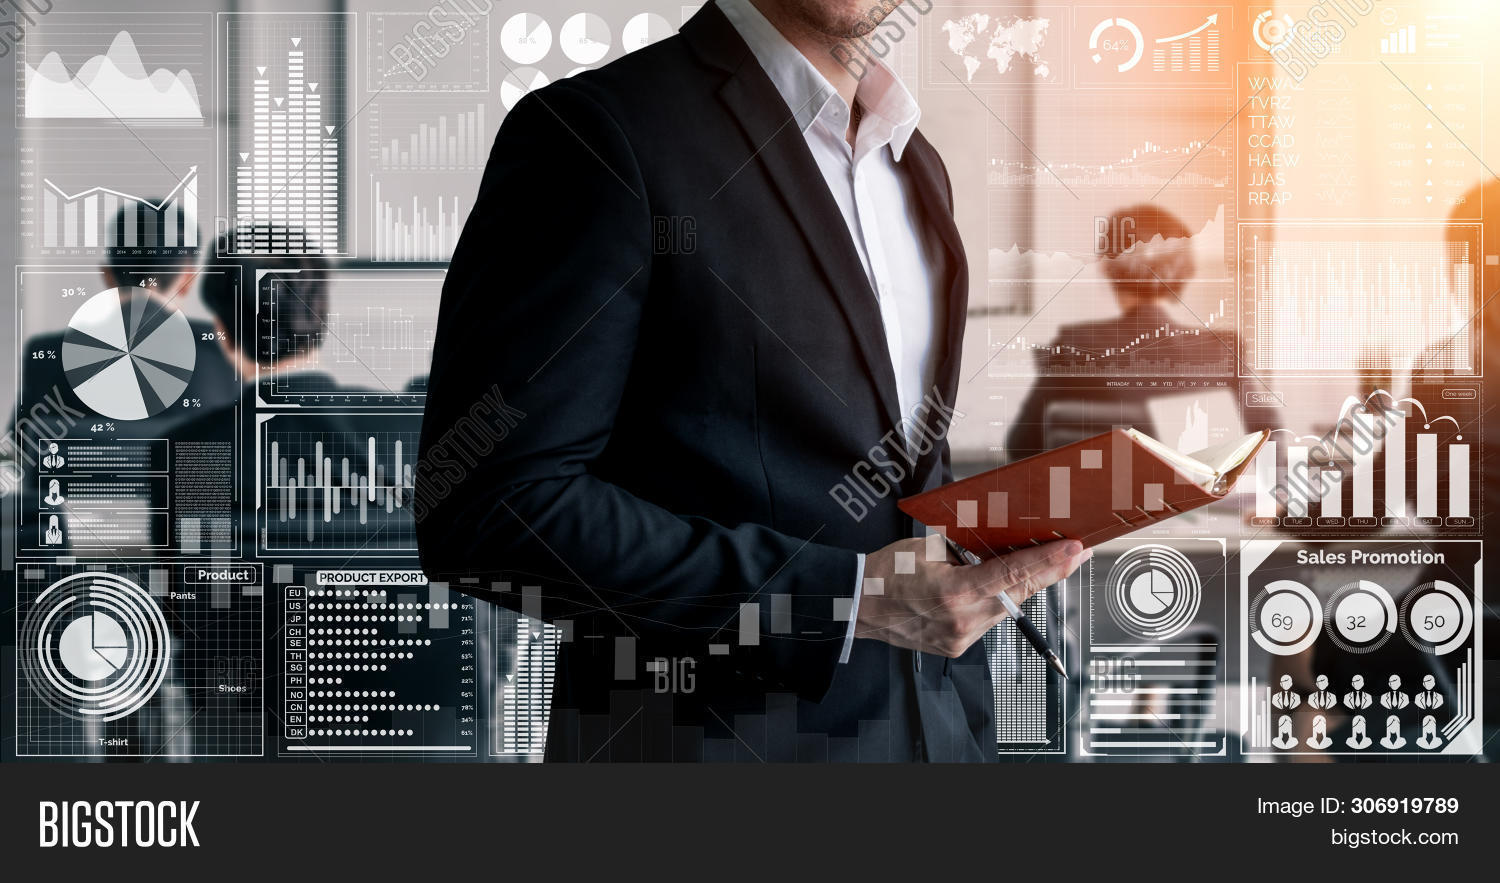 accountant,achievement,analysis,analytics,background,big,business,chart,computer,corporate,cyber,data,decision,digital,engineer,finance,financial,futuristic,global,growth,ict,information,innovation,intelligence,internet,investment,iot,leader,making,manager,market,marketing,metrics,network,performance,plan,report,research,screen,service,strategic,success,support,system,teamwork,tech,technology,trend,trust,website